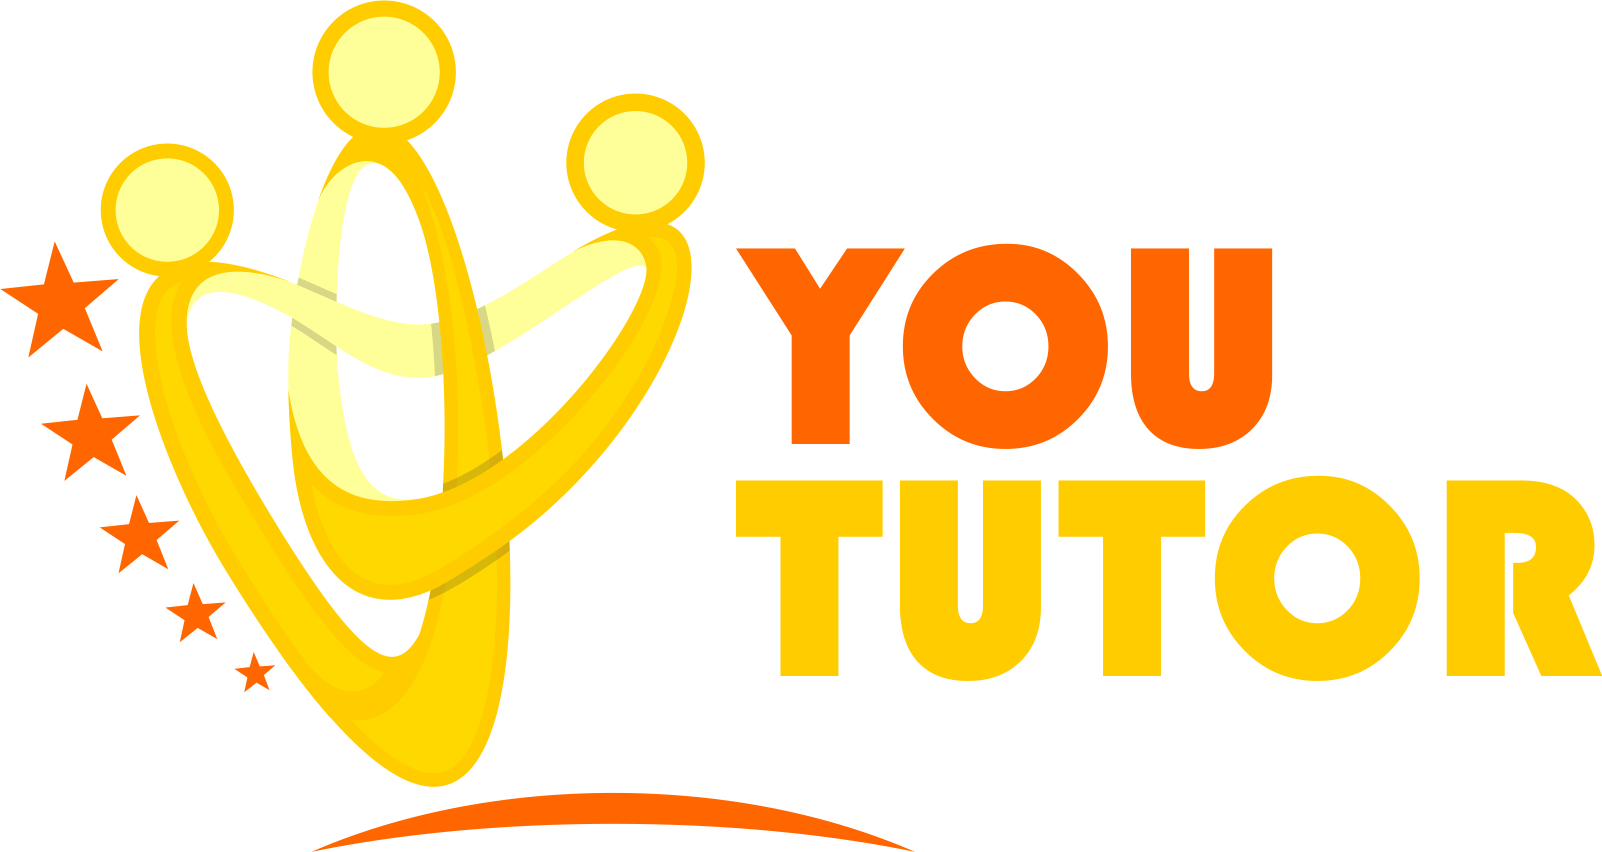 Ncert Solutions For Cbse Class 6 To 12 Free Cbse Ncert Solutions